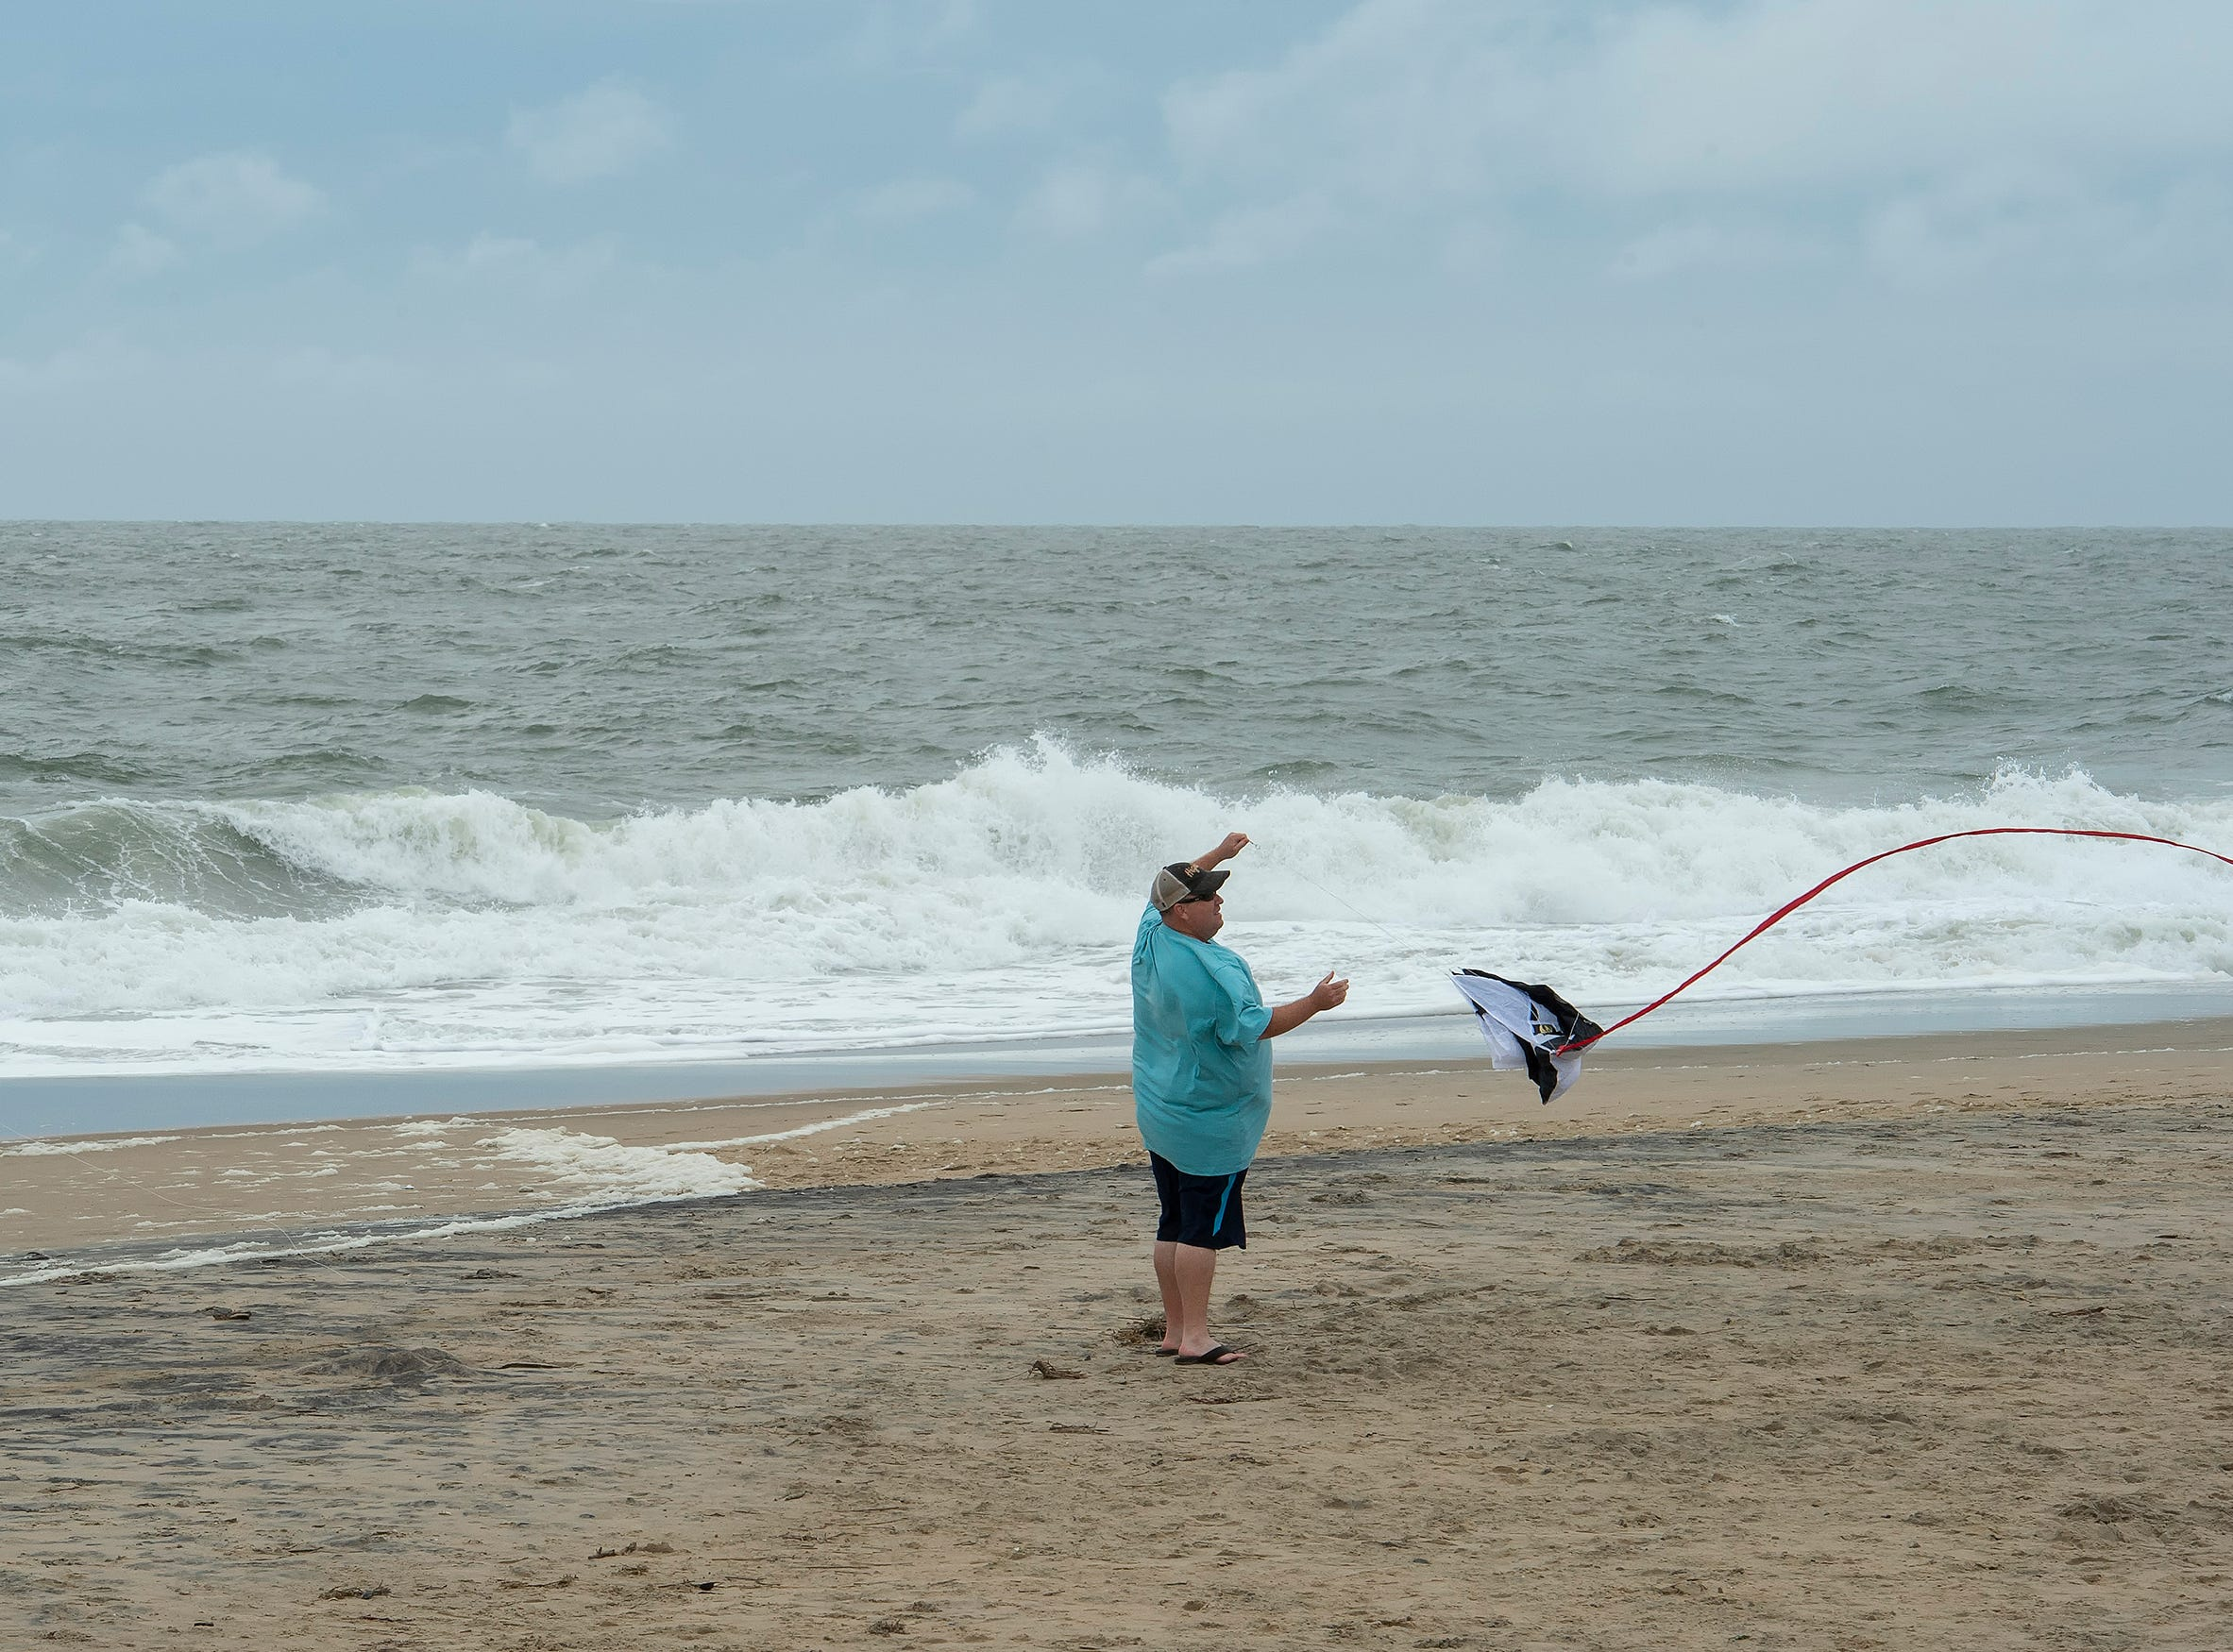 Tyson Hess and his daughter, Kate (10), of Leesburg, Va., fly a kite on the beach at Bethany Beach after Hurricane Florence made landfall in North Carolina.